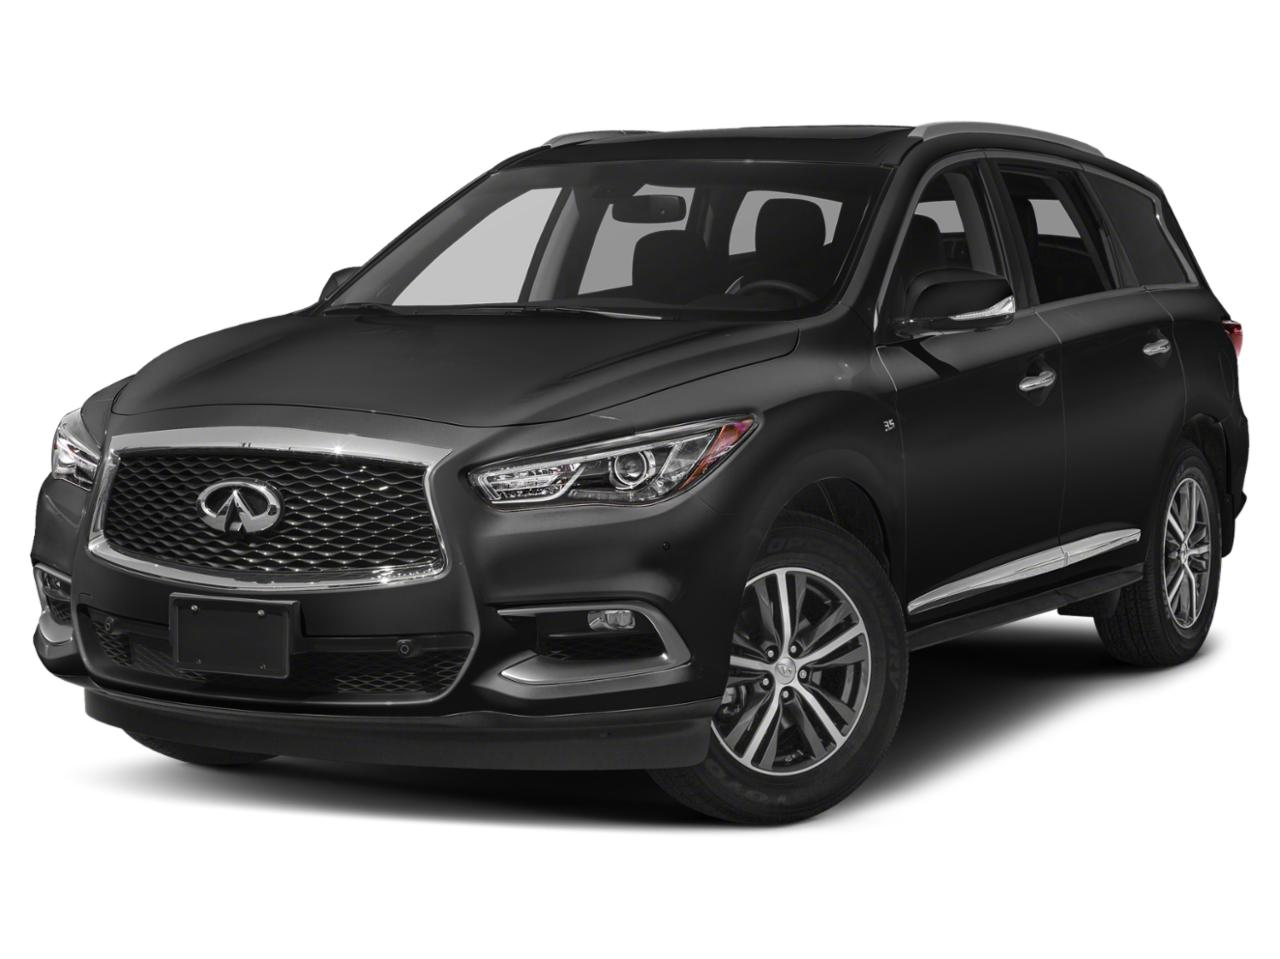 2019 INFINITI QX60 Vehicle Photo in Fort Worth, TX 76116